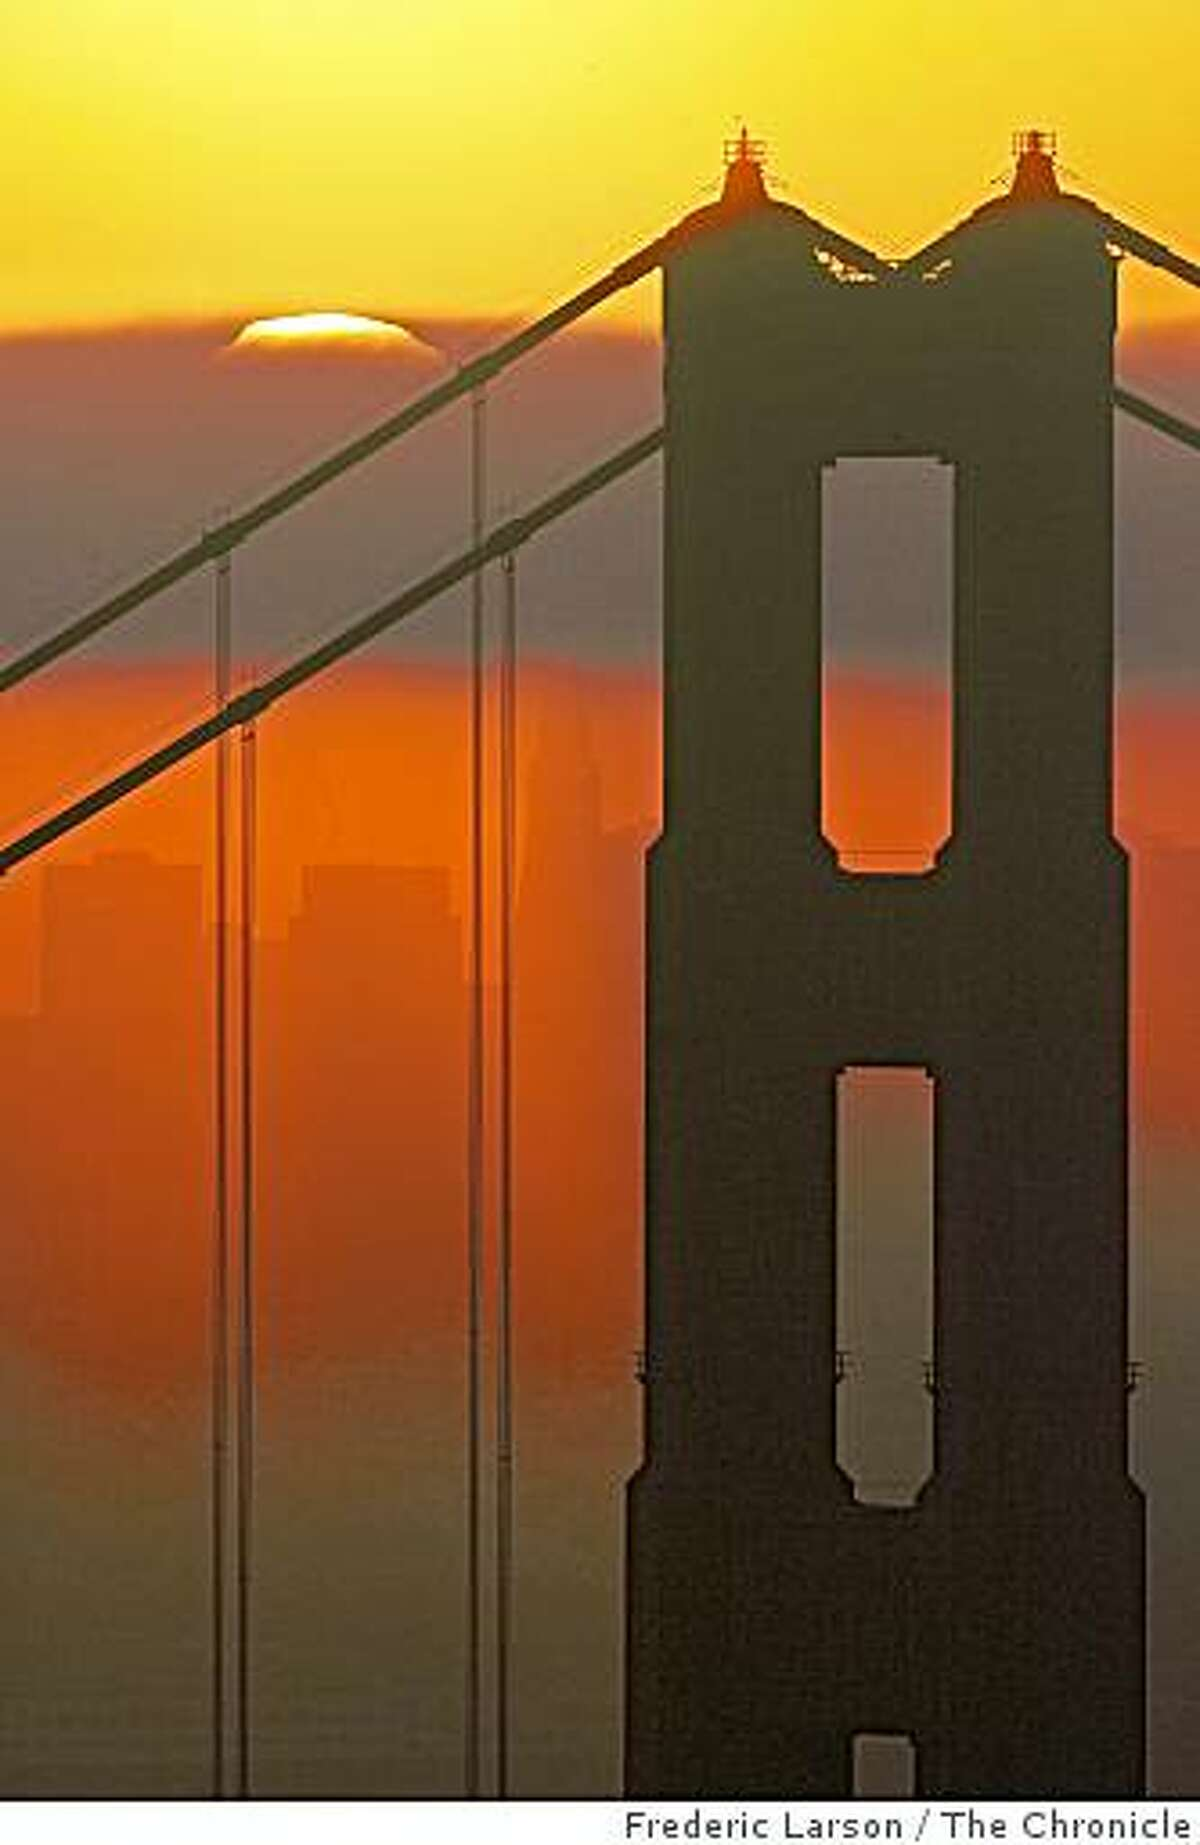 The sun rose through a thin bank of fog resting near the top of the north tower of the Golden Gate Bridge.